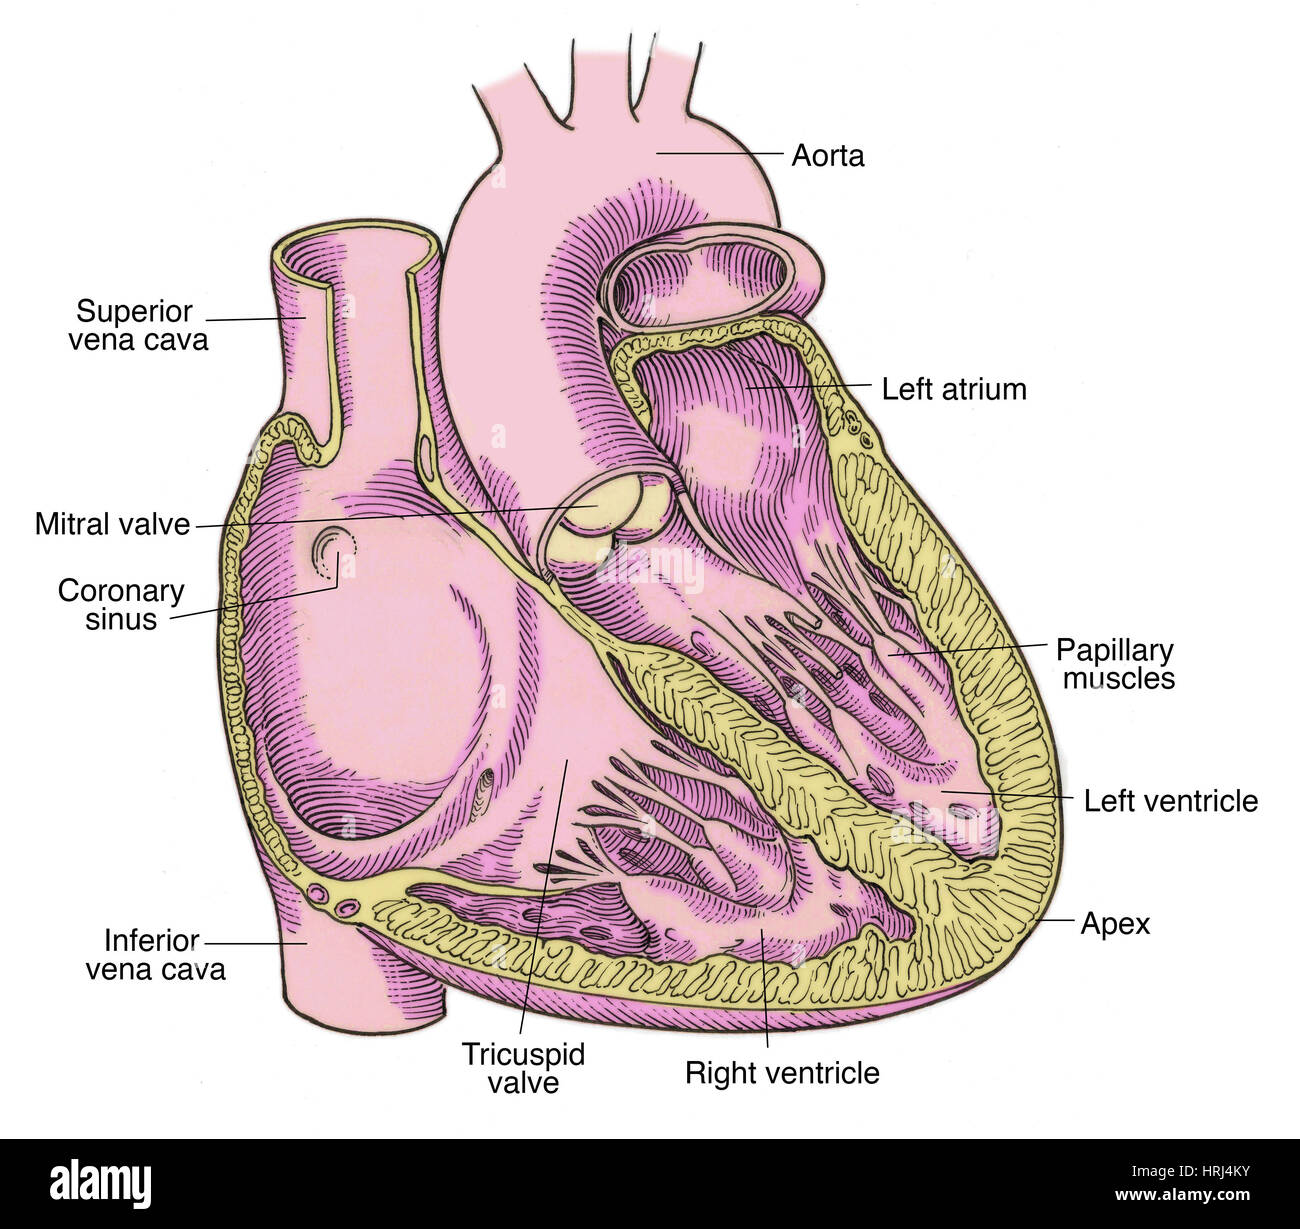 Muscle Heart Drawing Cut Out Stock Images & Pictures - Alamy